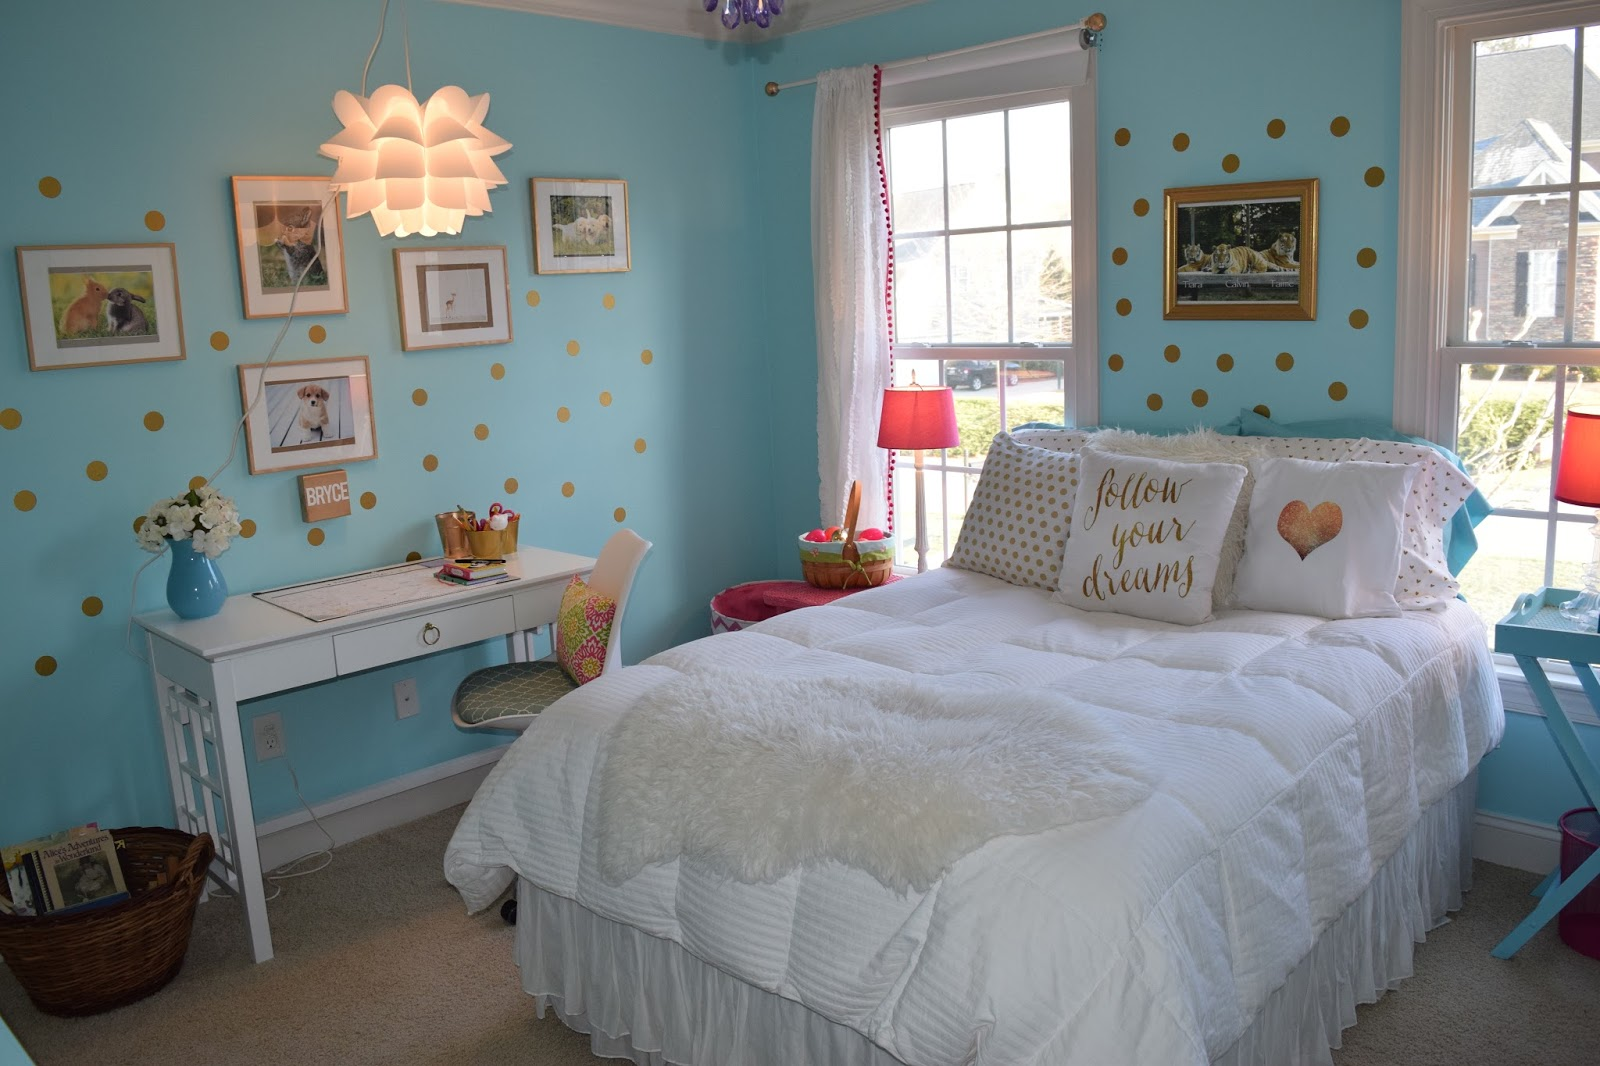 10 Year Old Bedroom Ideas Blue And Yellow Theme Boy Bedroom Ideas ...